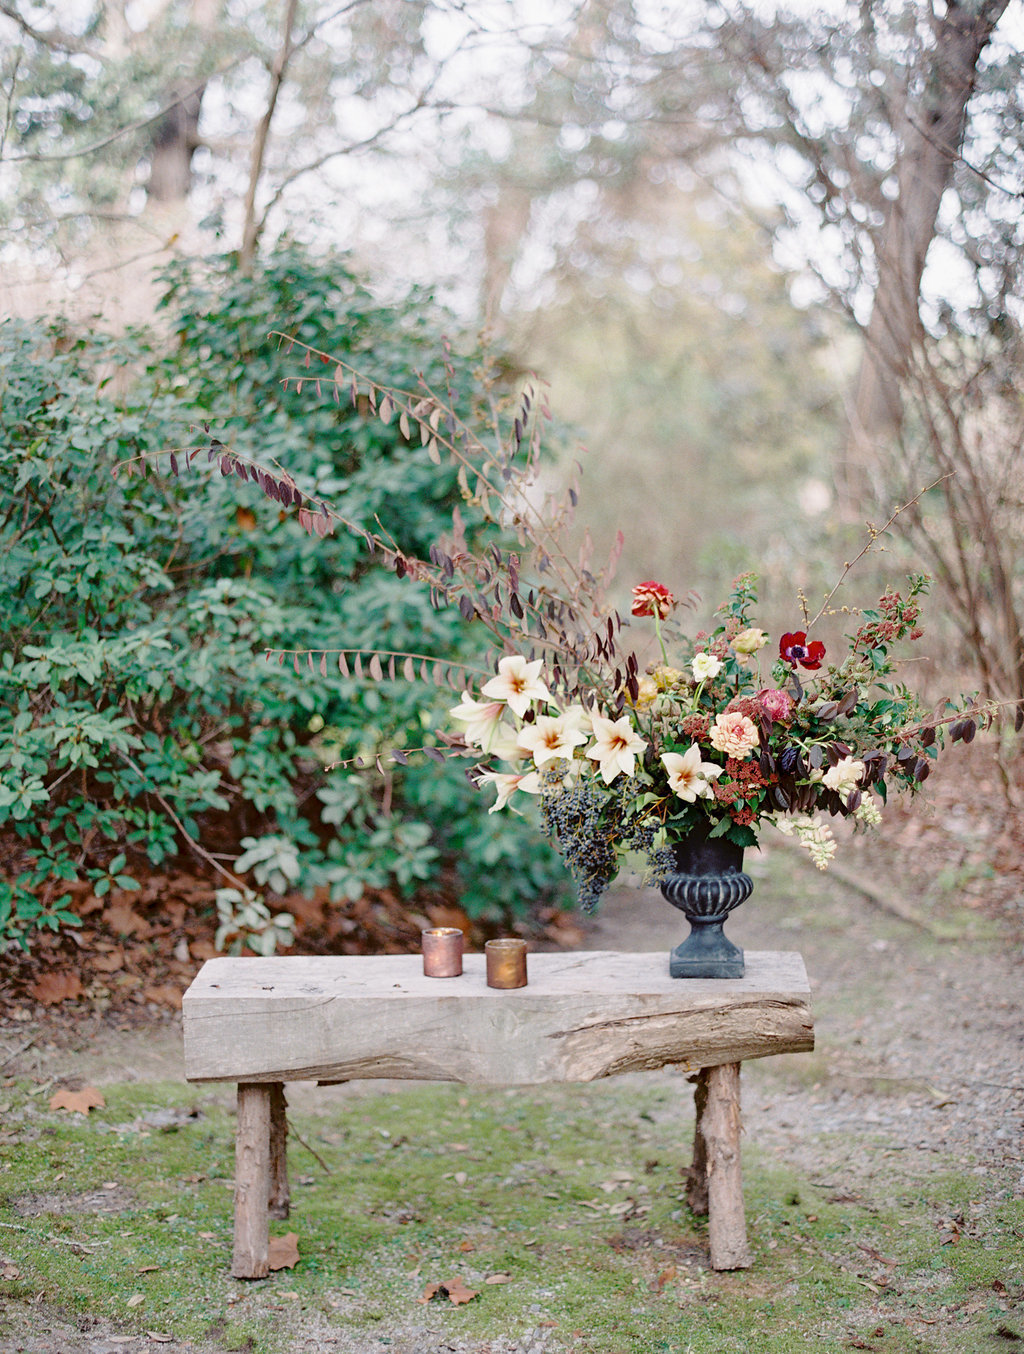 wavering-place-south-carolina-wedding-event-planner-jessica-rourke-369